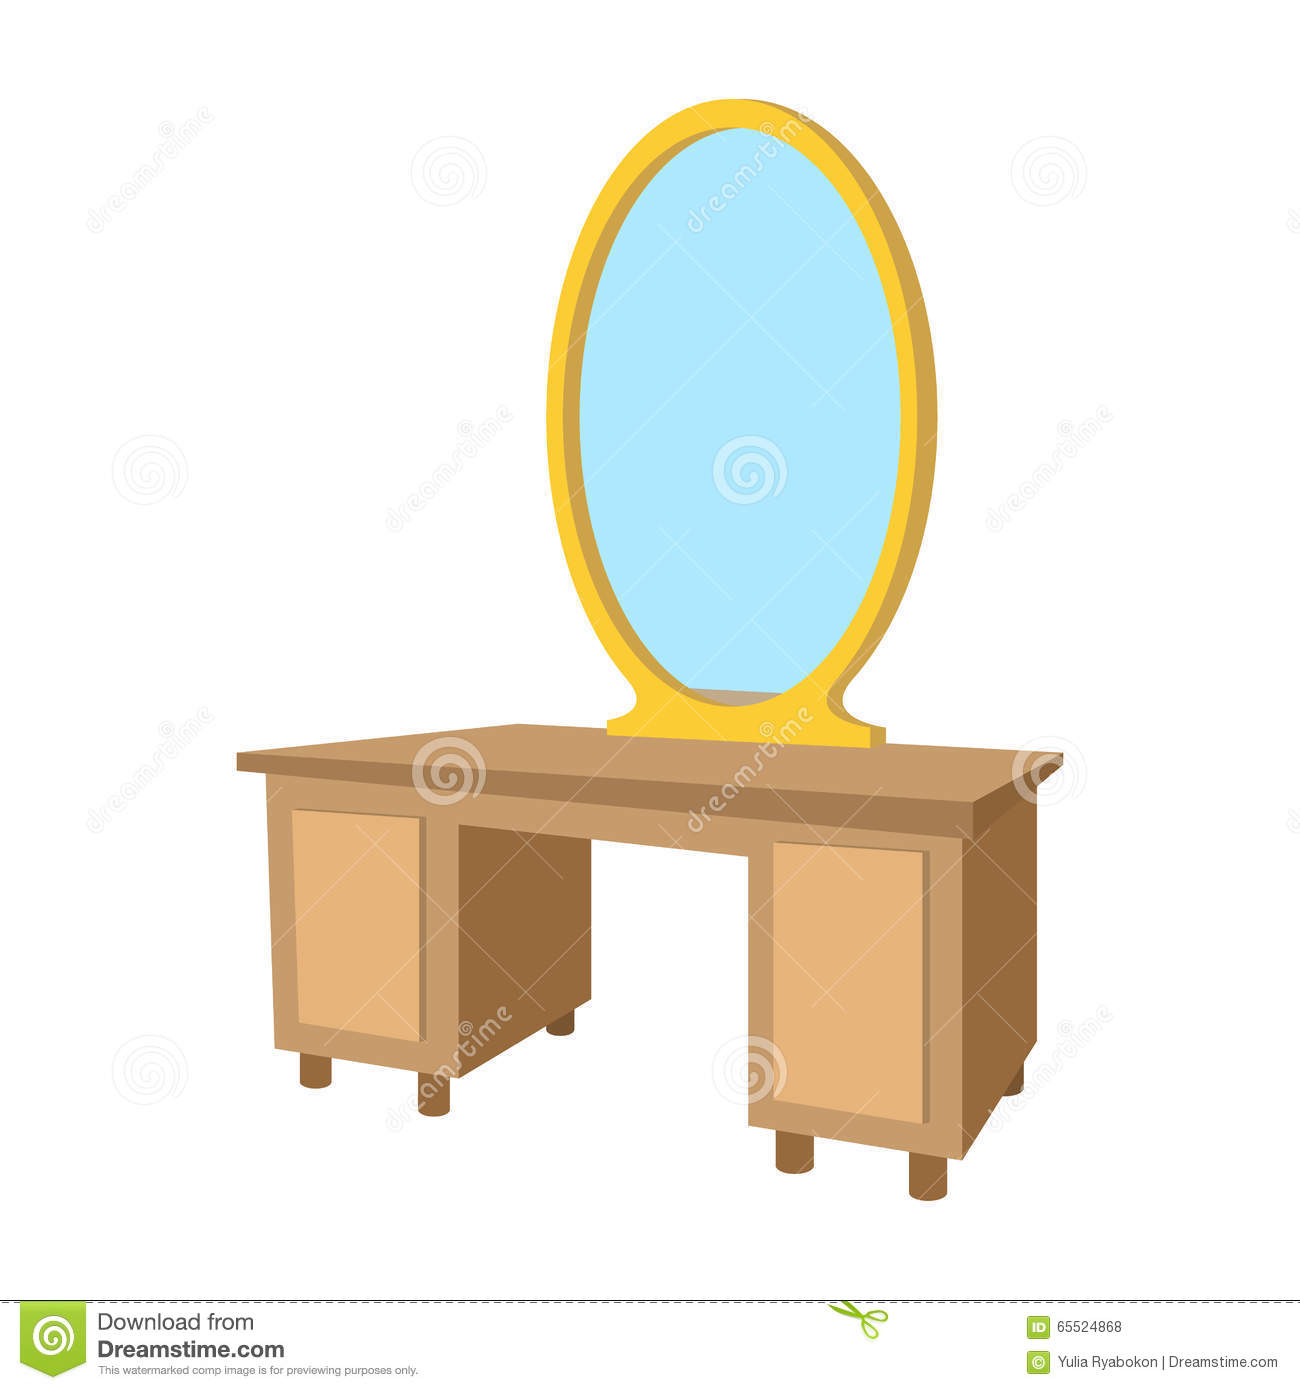 Dressing Table With A Mirror Cartoon Icon Stock Vector